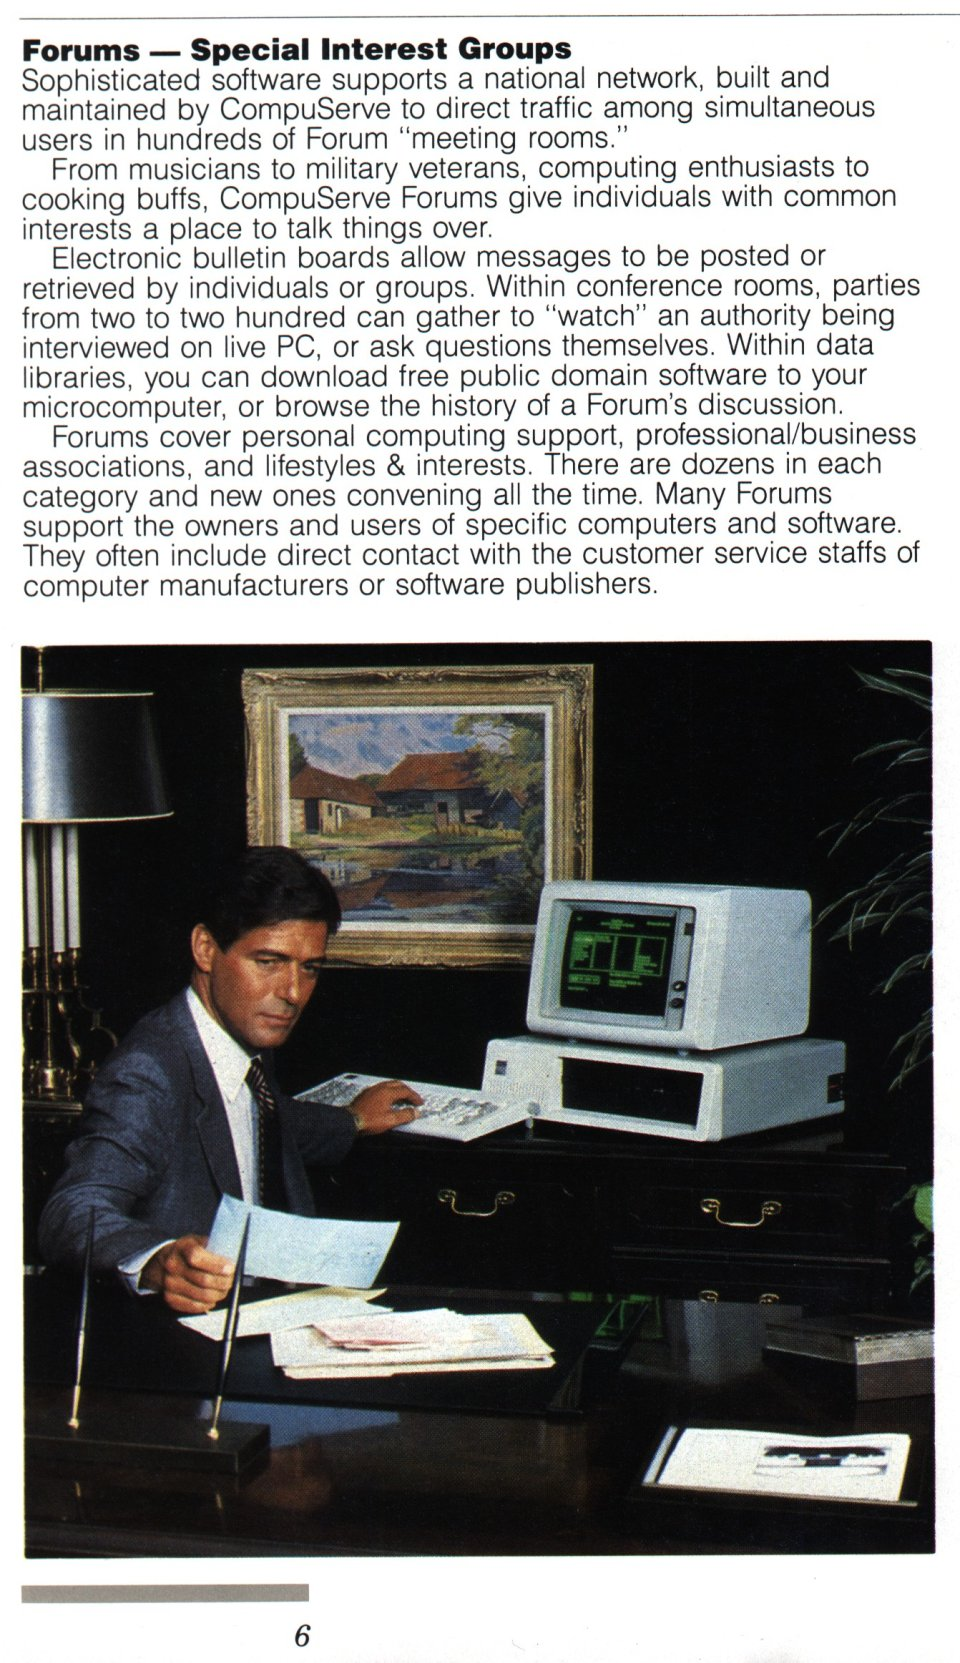 [CompuServe IntroPak page 6/44  Forums - Special Interest Groups]